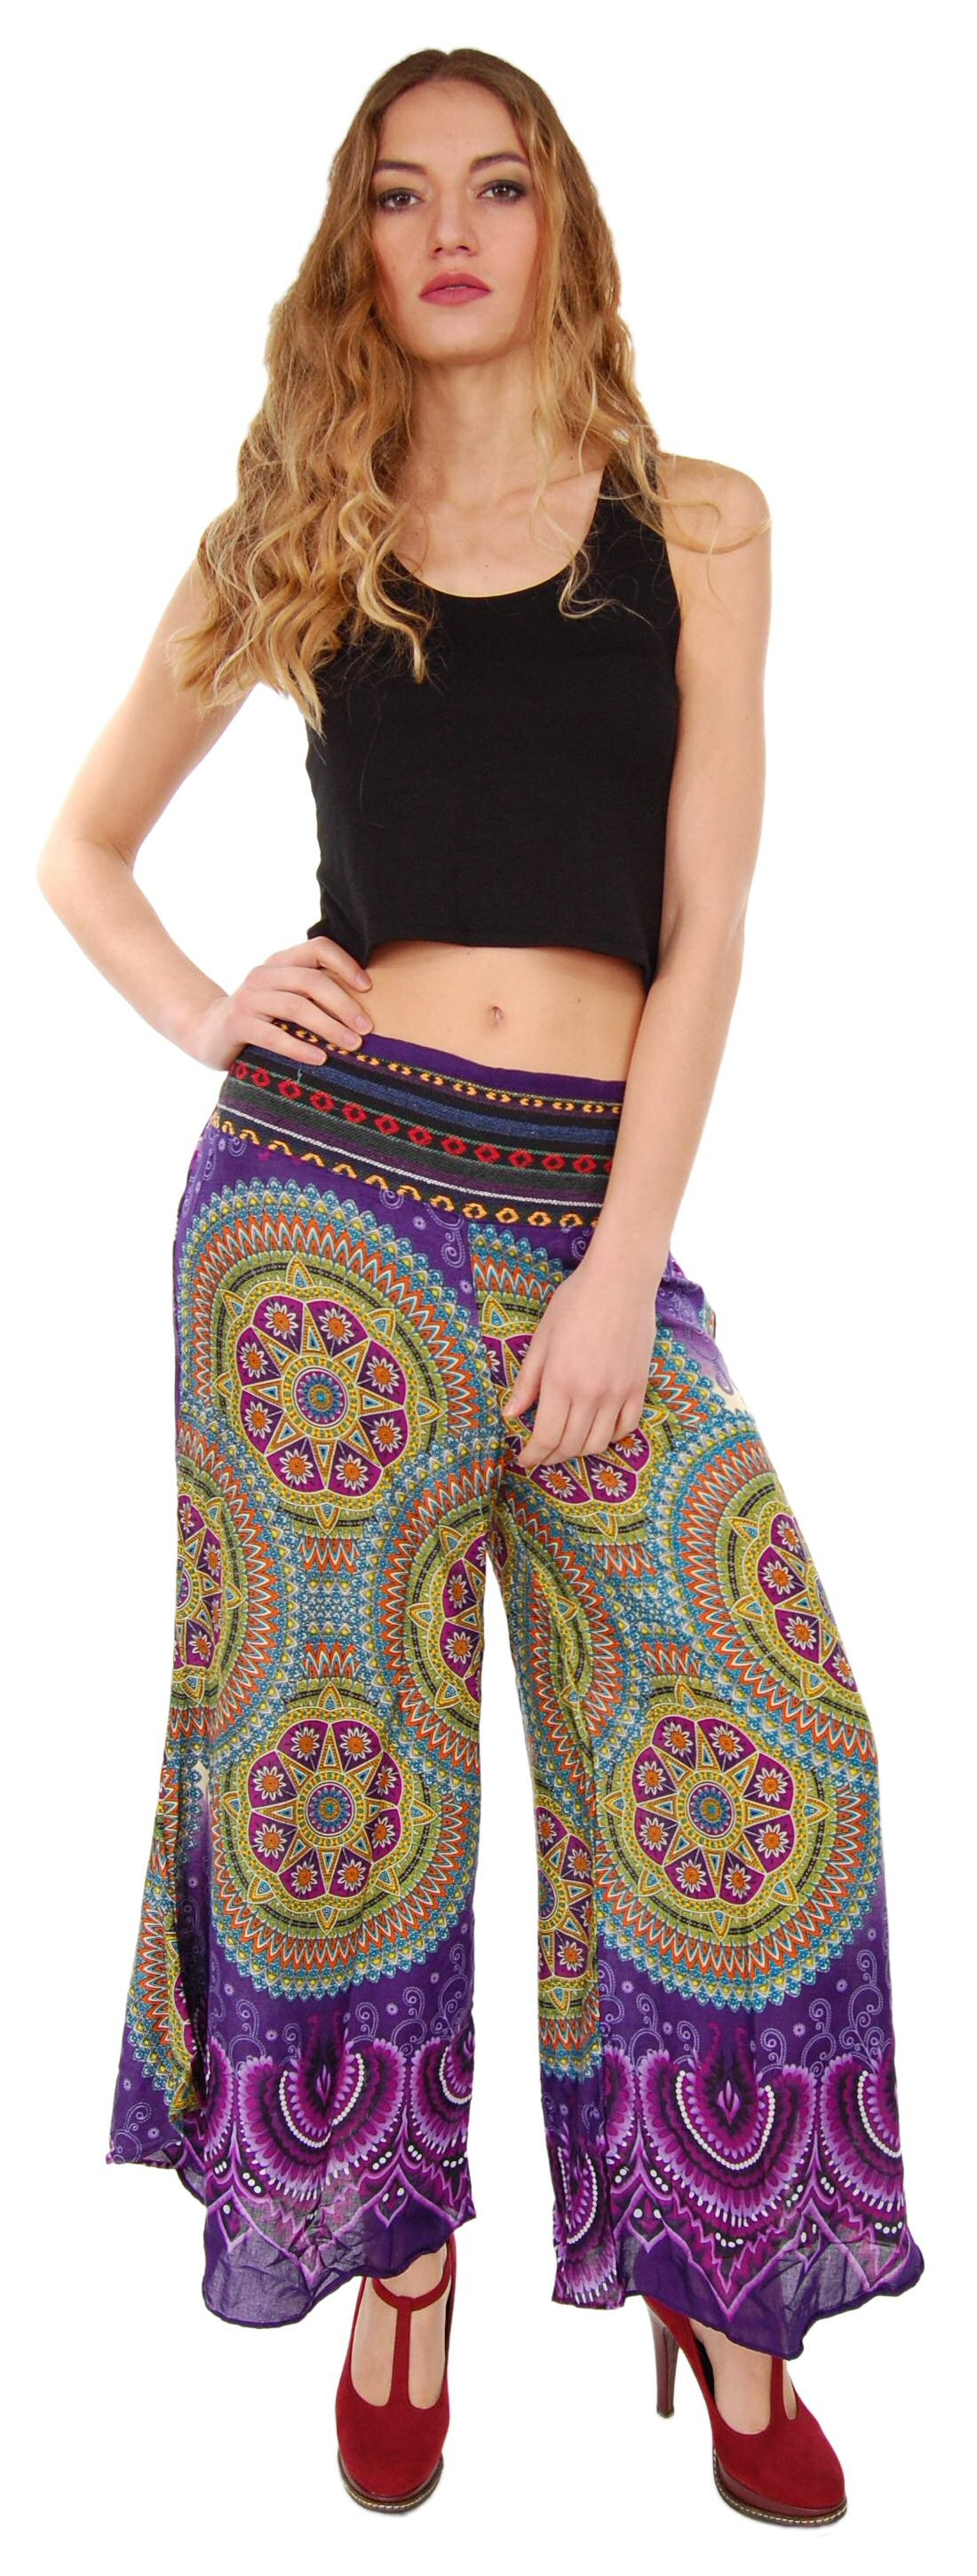 VISCOSE SHORTS AB-BCP08BE - Oriente Import S.r.l.